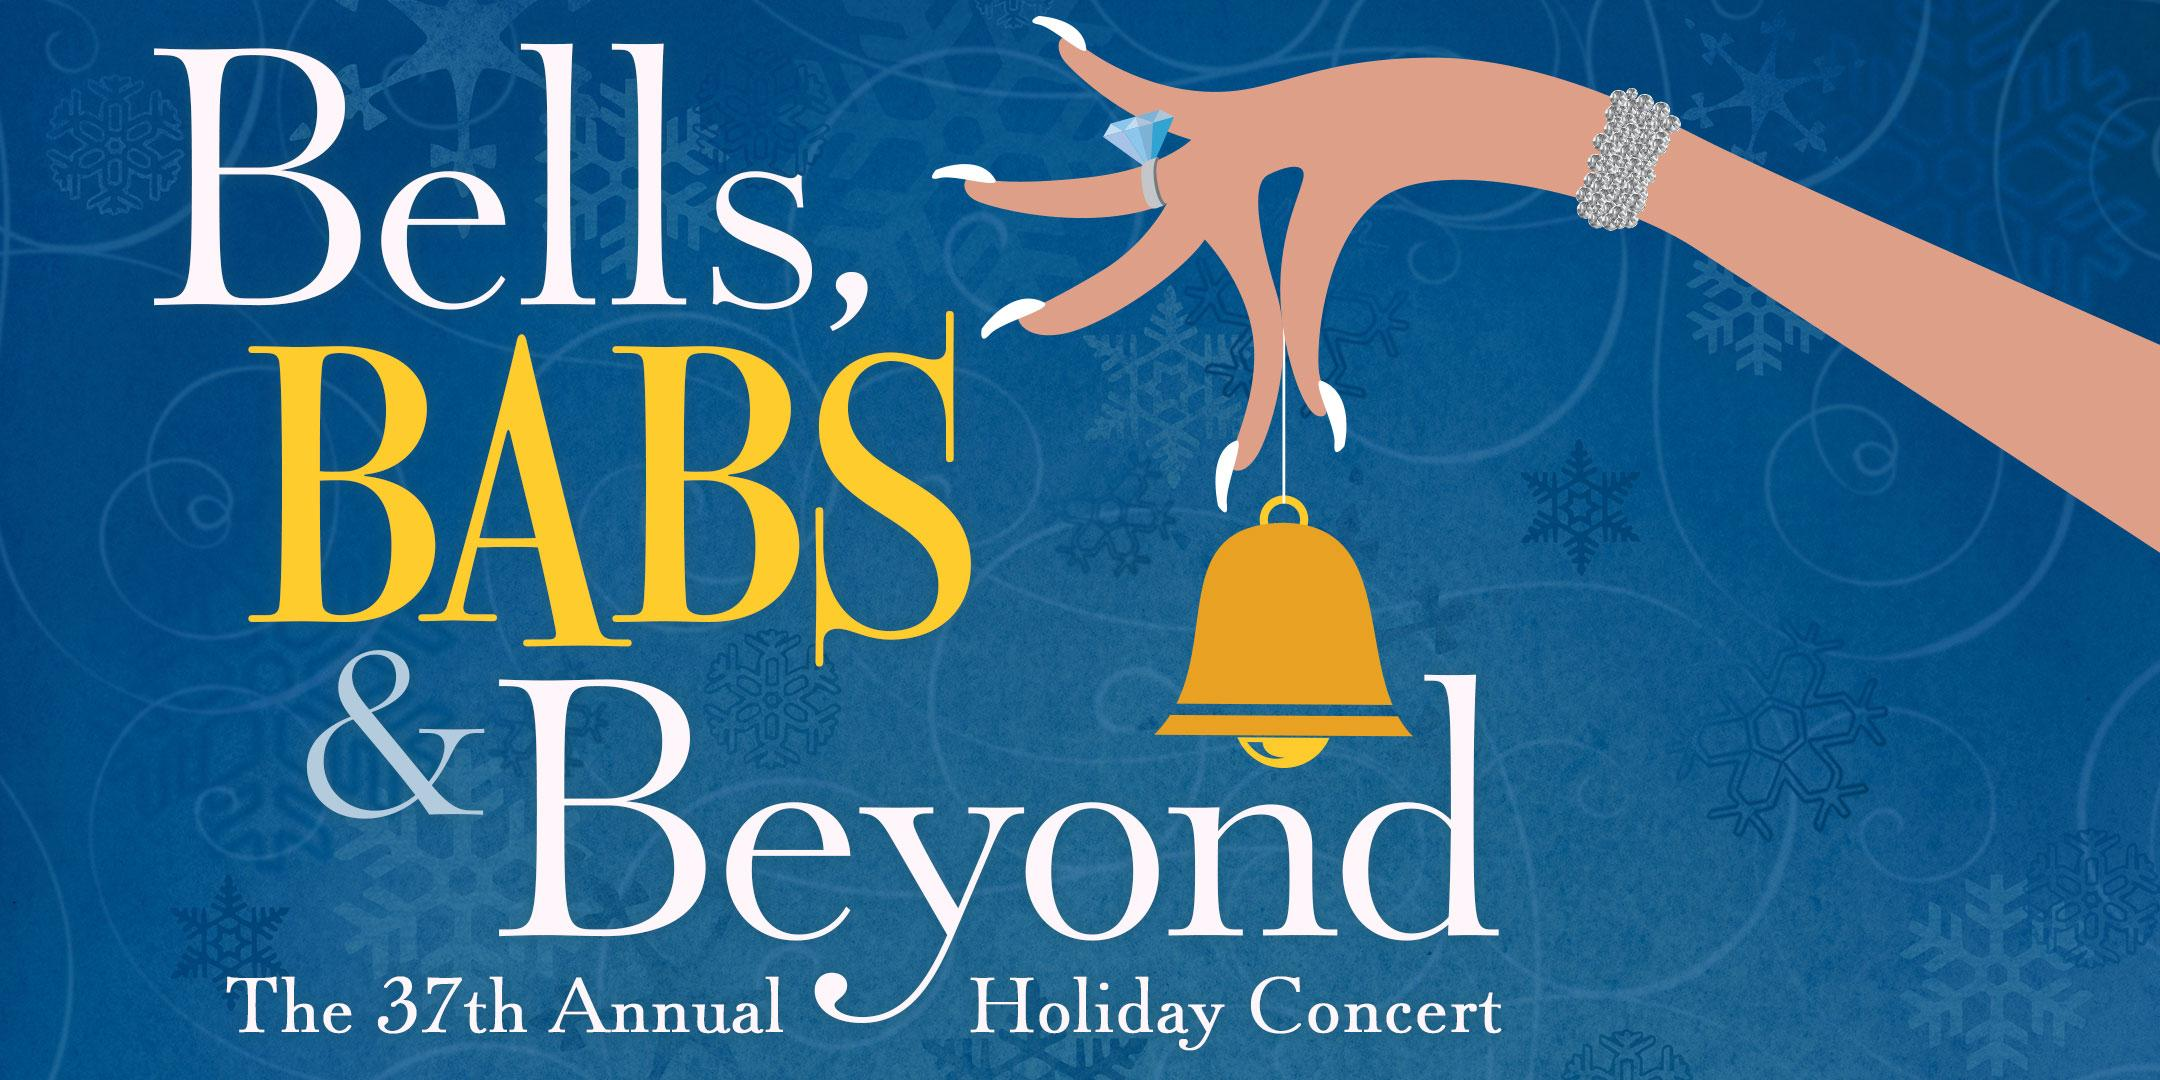 Agmc: Bells, Babs, and Beyond - the 37th Annual Holiday Concert | Atlanta, GA | The Cathedral of St. Philip | December 9, 2017